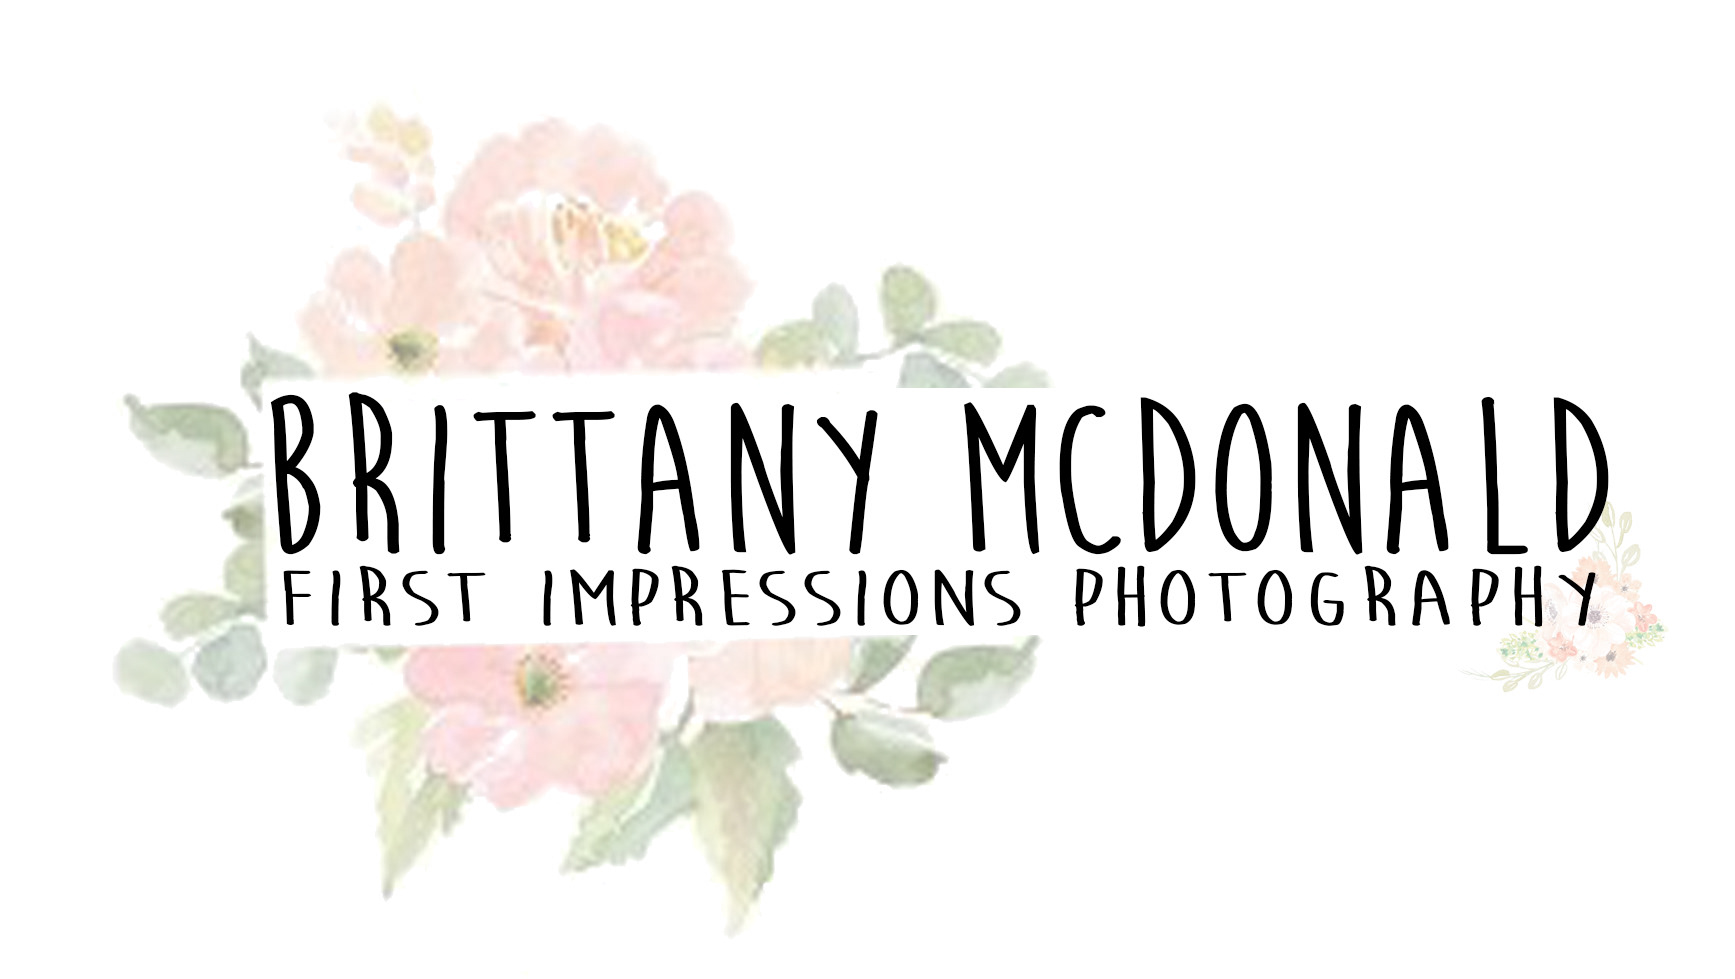 First Impressions Photography